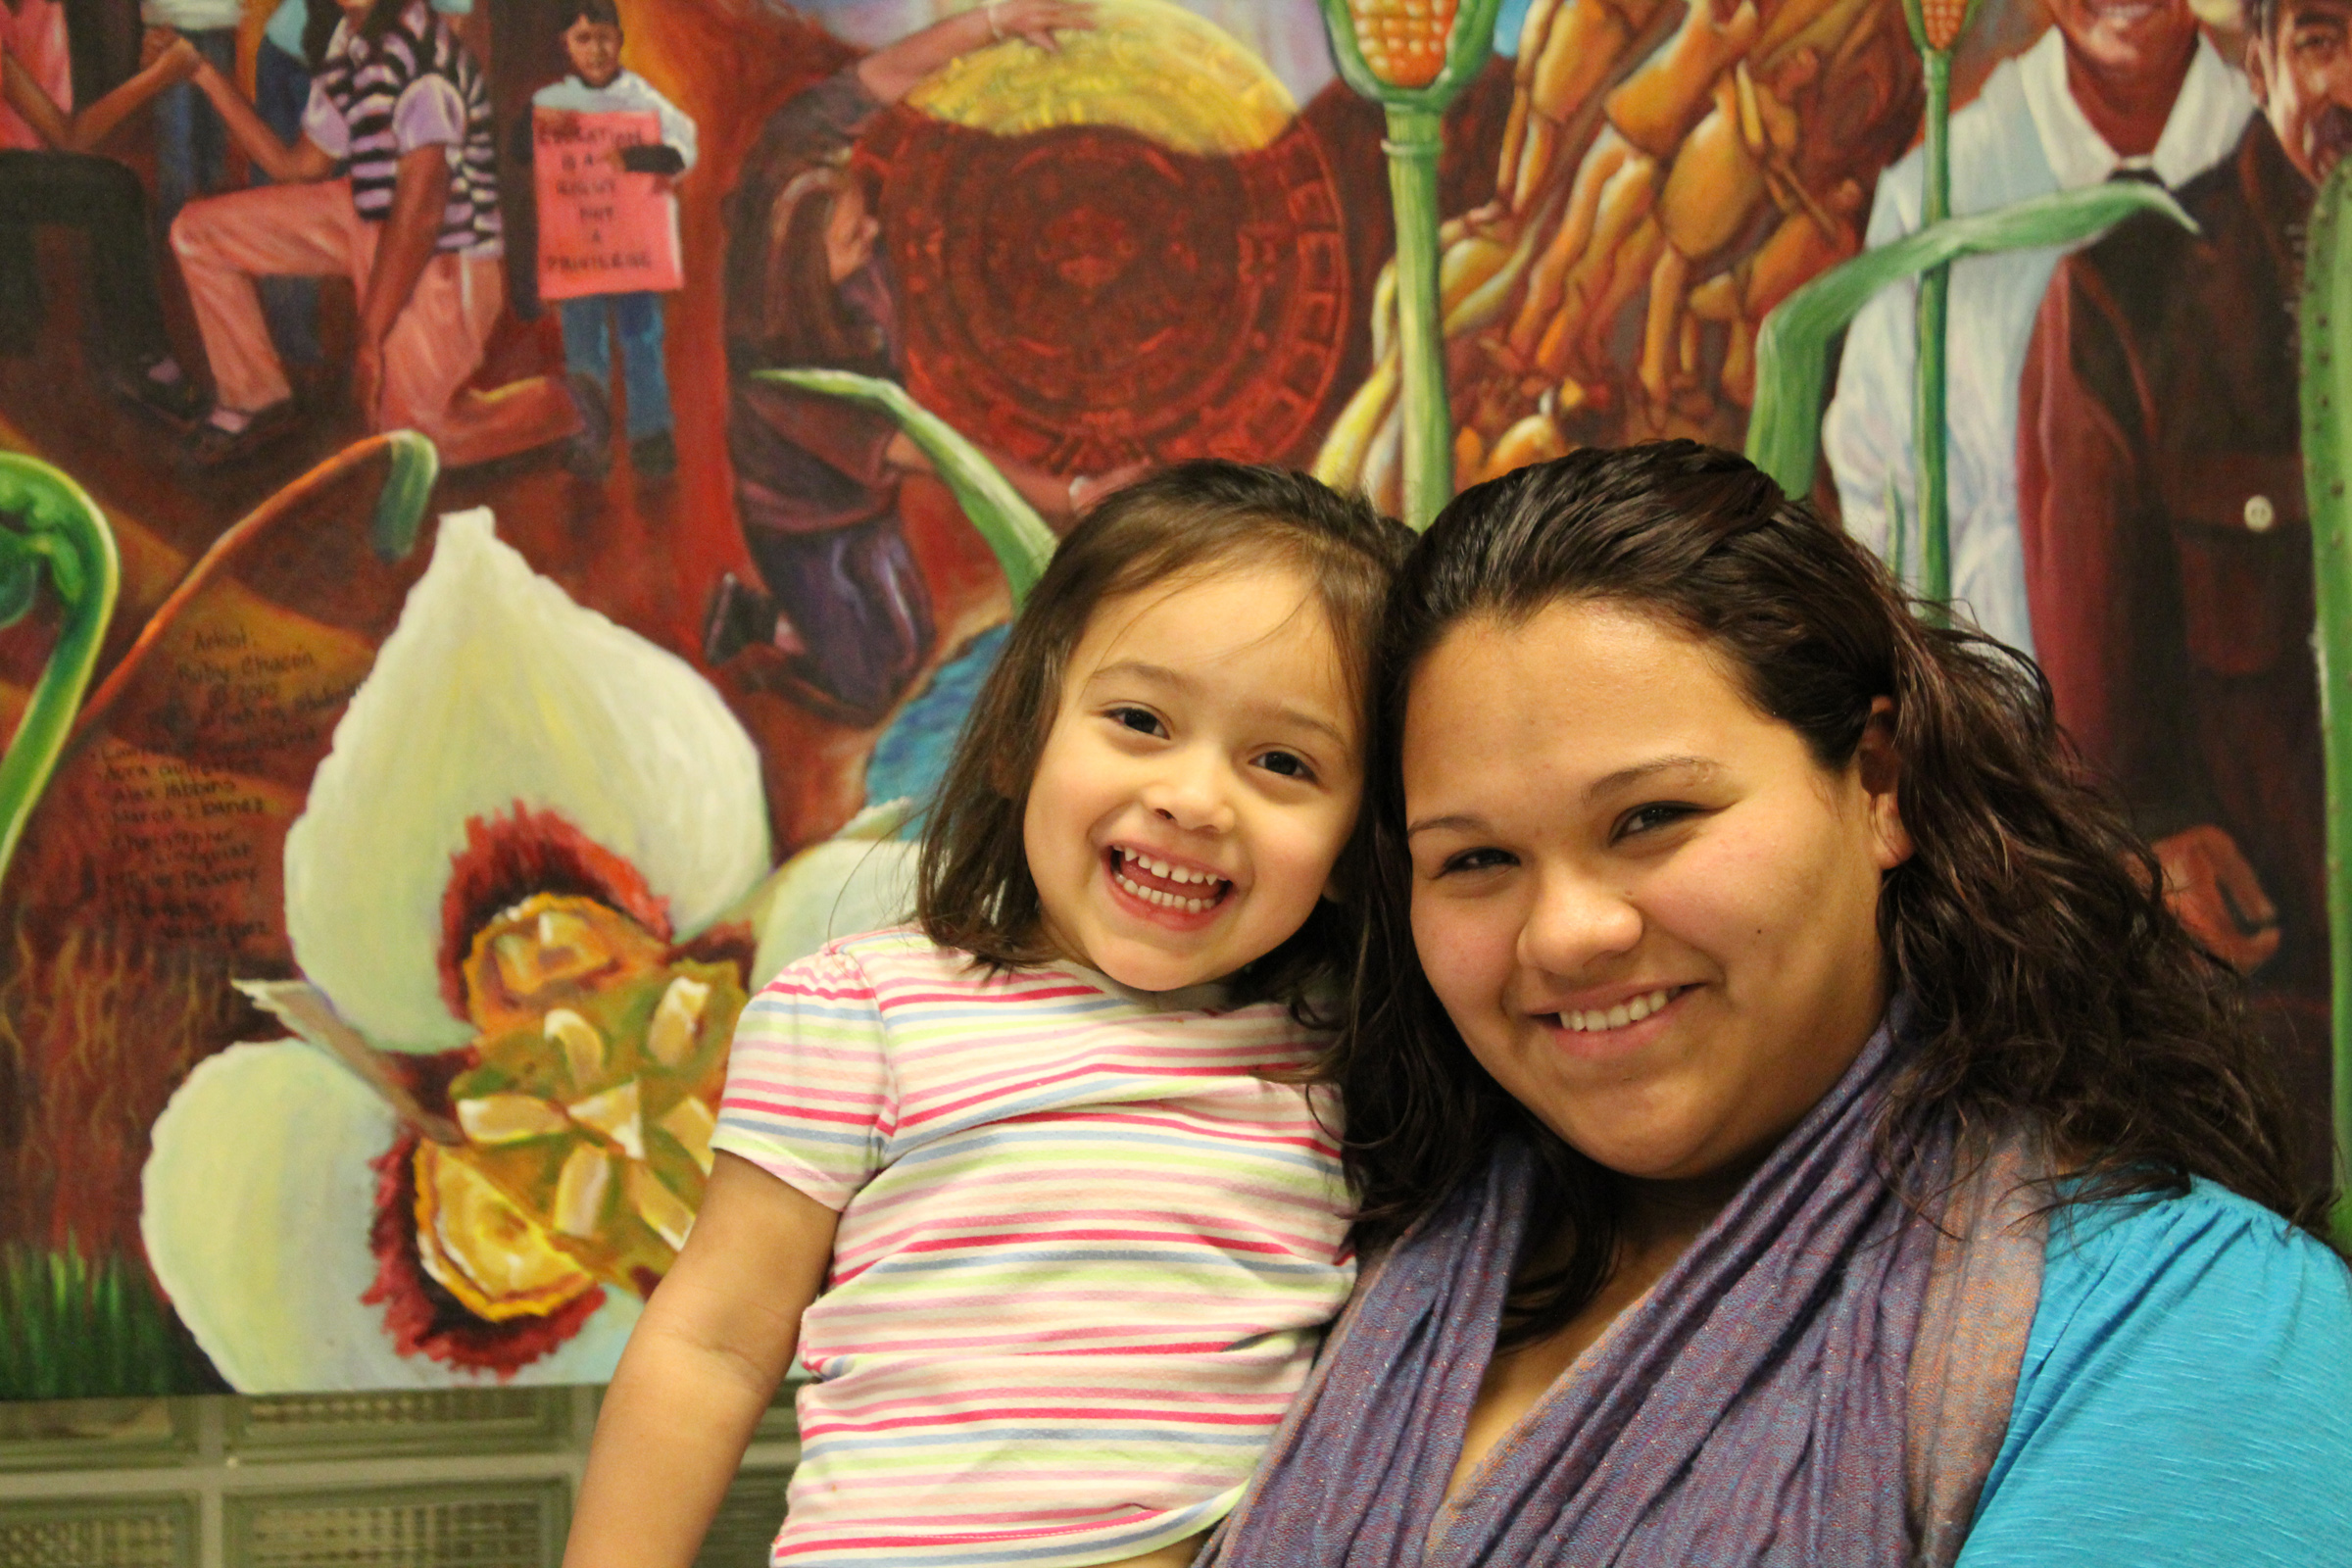 Pregnant at age 15, Aura credits her participation in Latinas Adelante with changing her life for the better.